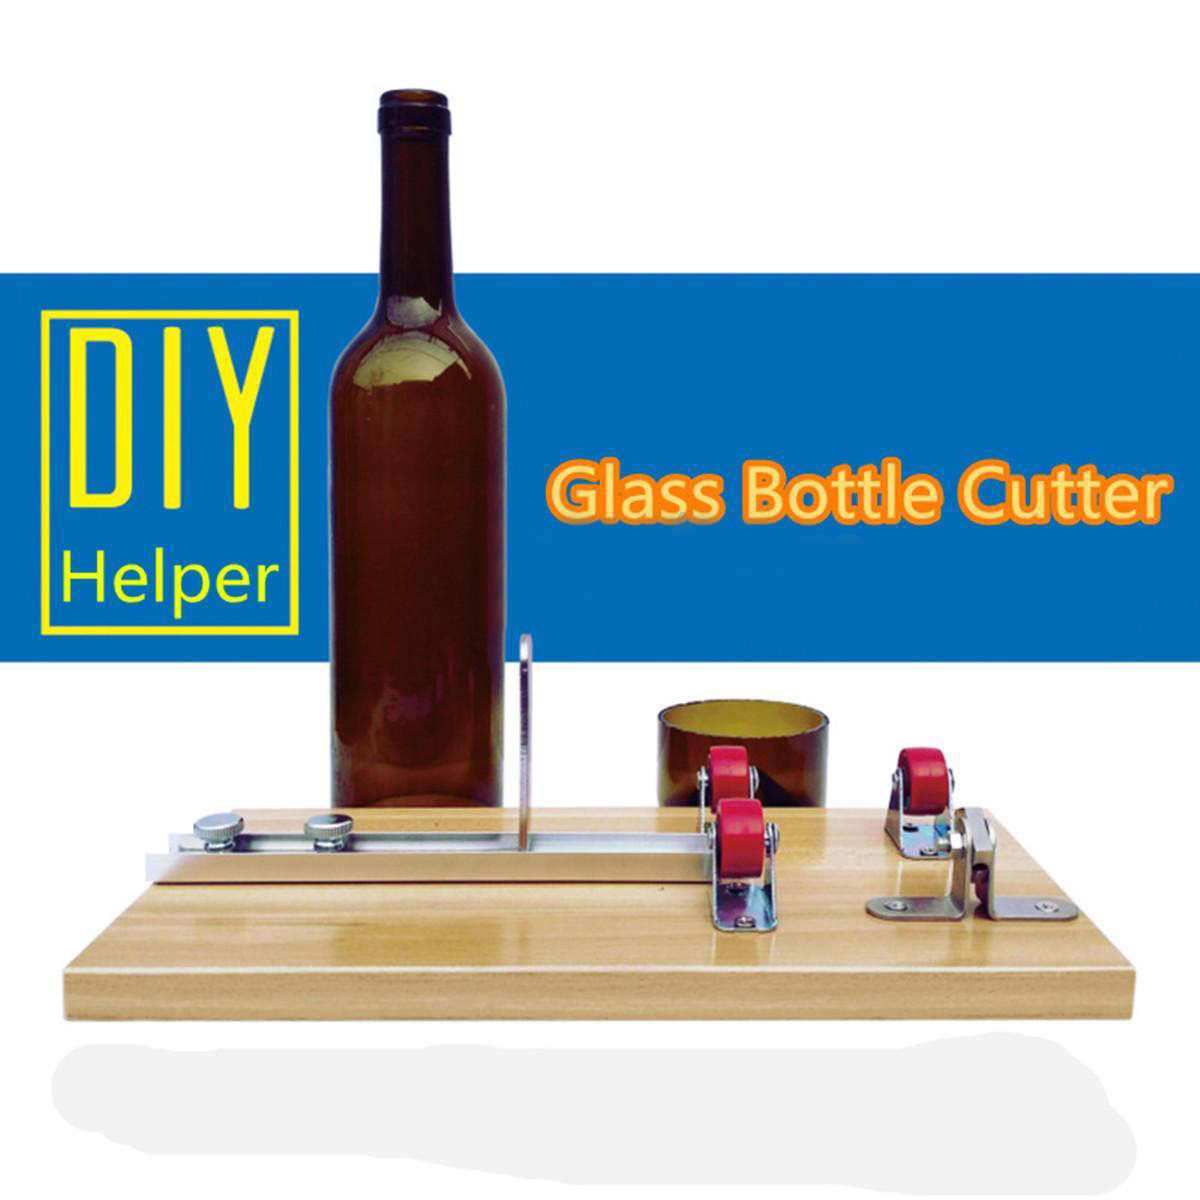 High Quality Mayitr Glass Bottle Cutter Machine Sculpture Art Cutting Tool DIY Recycle Wine Bottle Jar Cutter Machine Kit p80 panasonic super high cost complete air cutter torches torch head body straigh machine arc starting 12foot